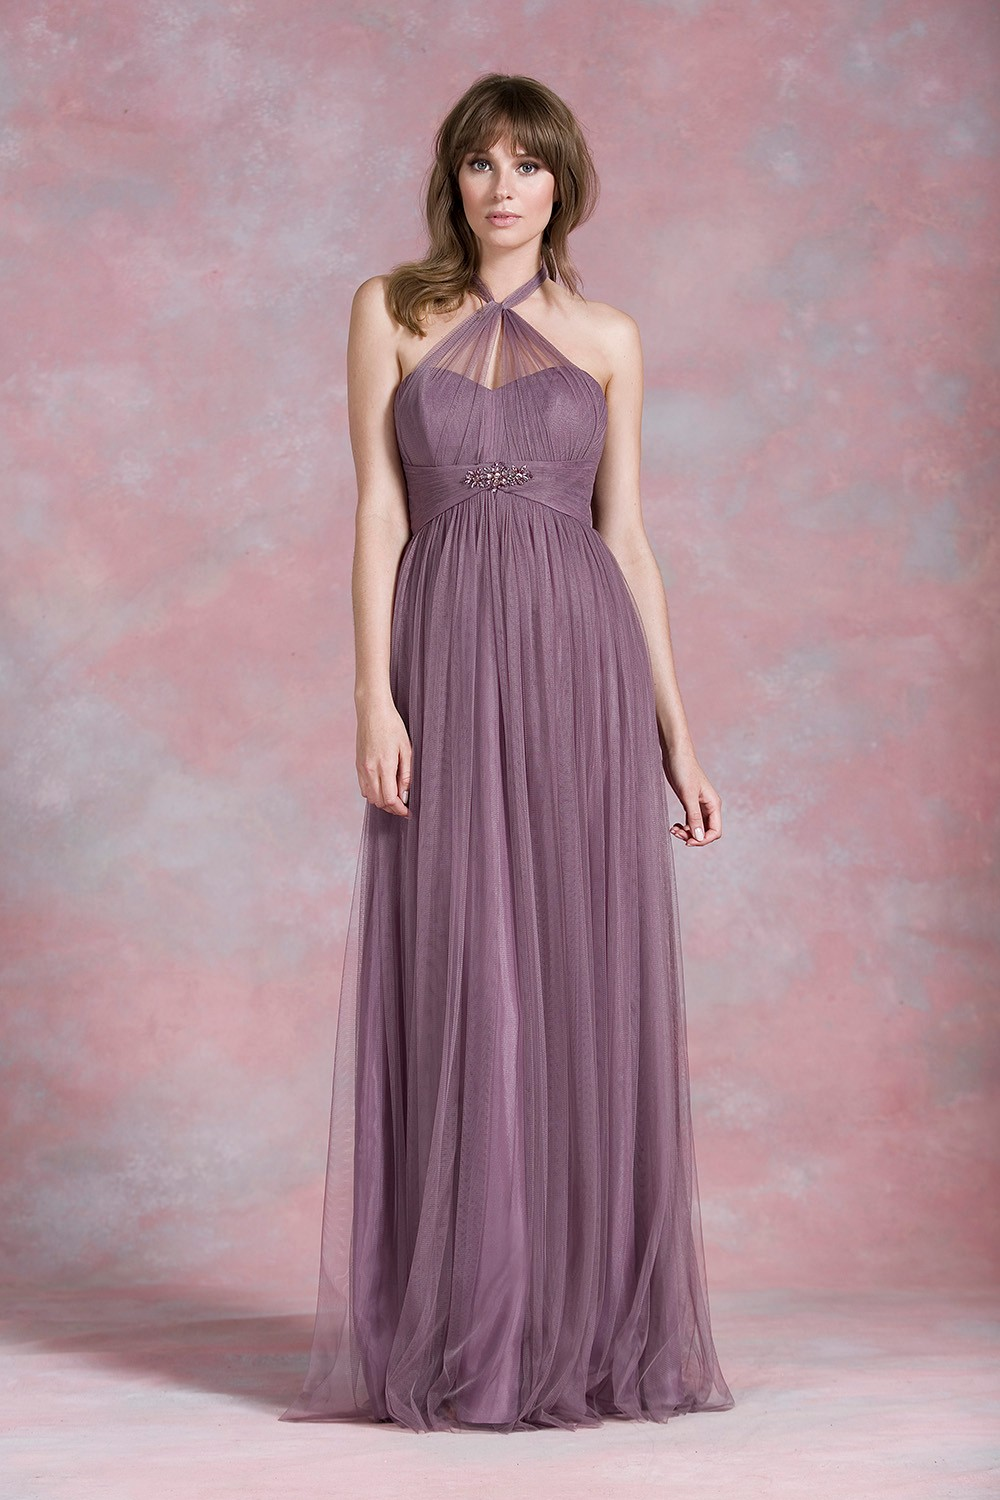 ae2c27261 Fashion New Beautiful 2016 v Neck Short Chiffon Bridesmaid Dress  Knee-Length vestido para casamento para convidada BMD208USD 68.63/piece